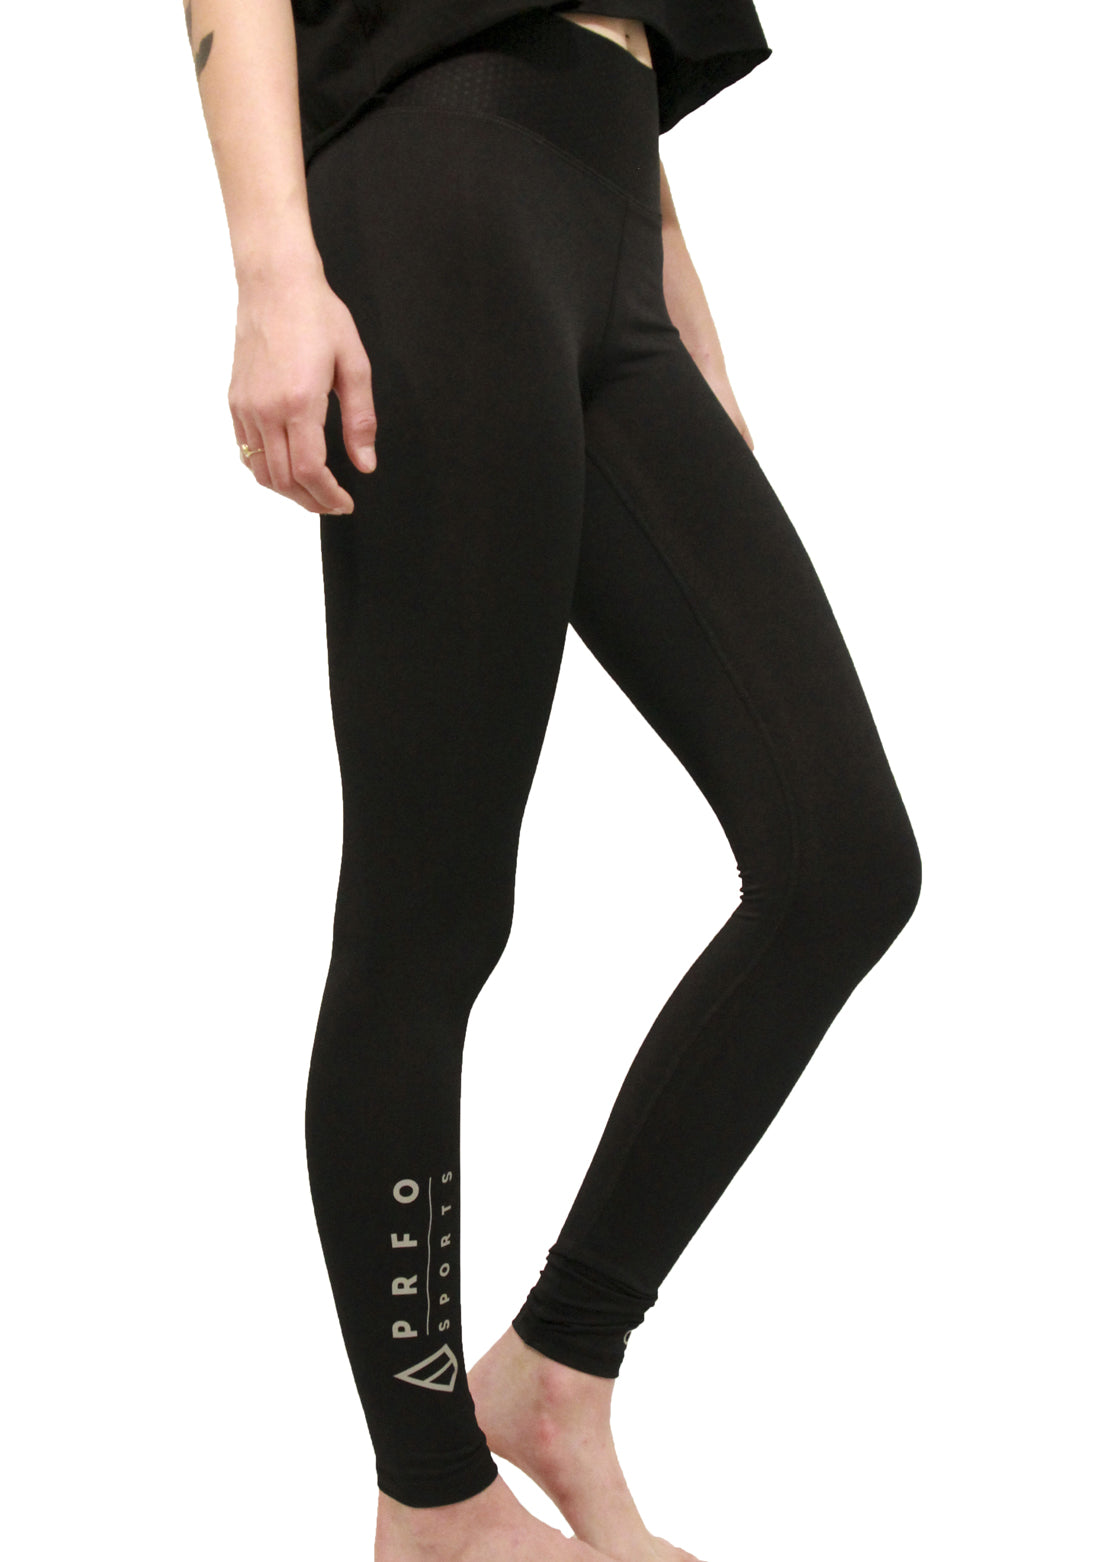 PRFO X Champion Women's Icon Sports Leggings Black/3m